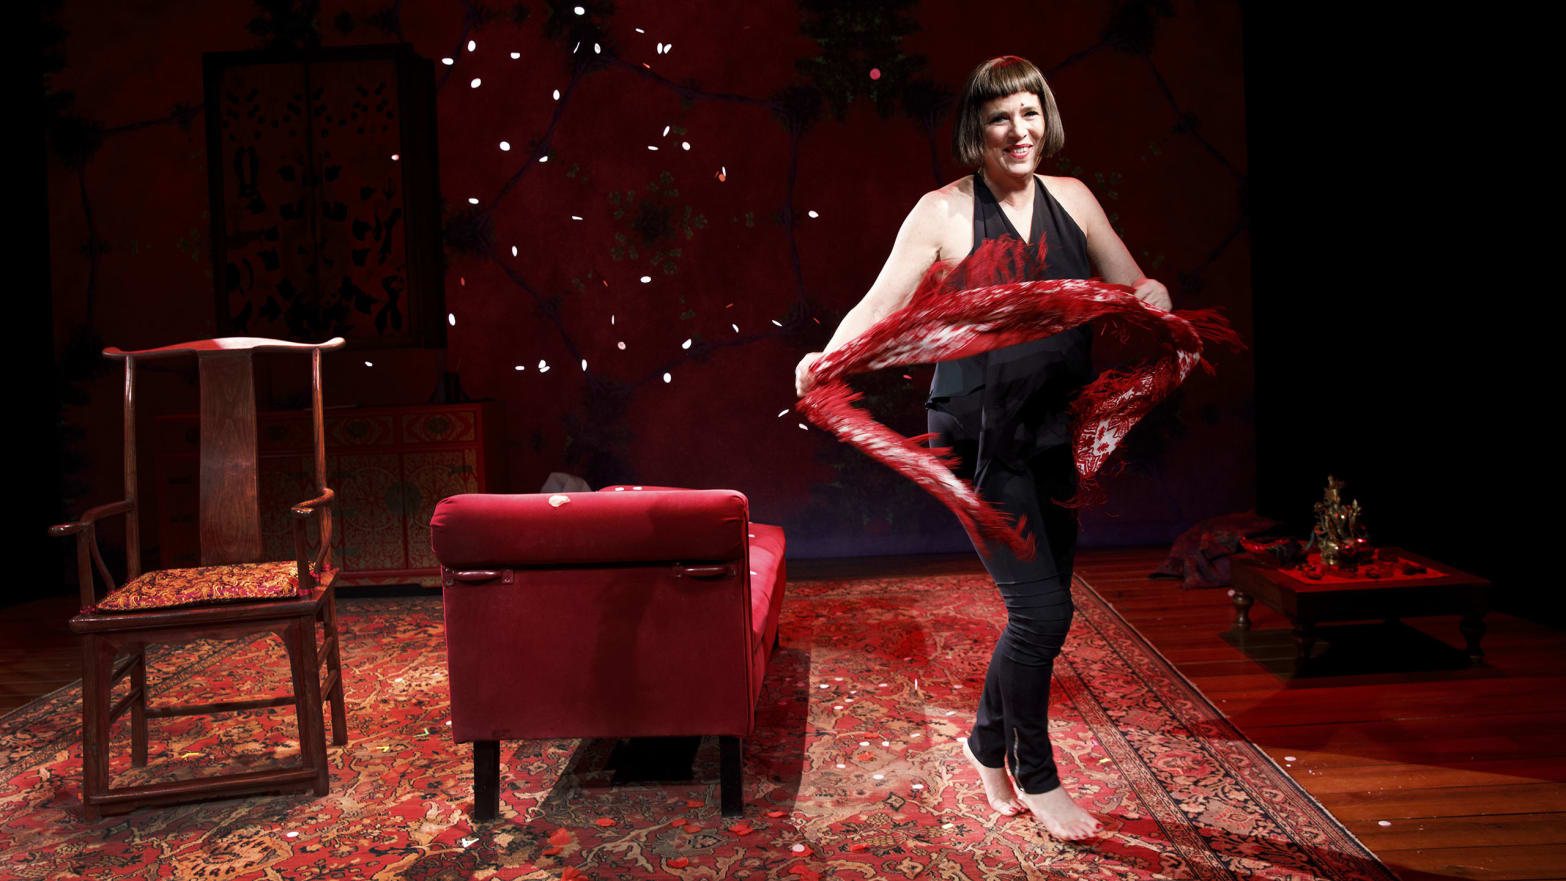 Eve Ensler's New Monologue Is About Vaginas, and Much More